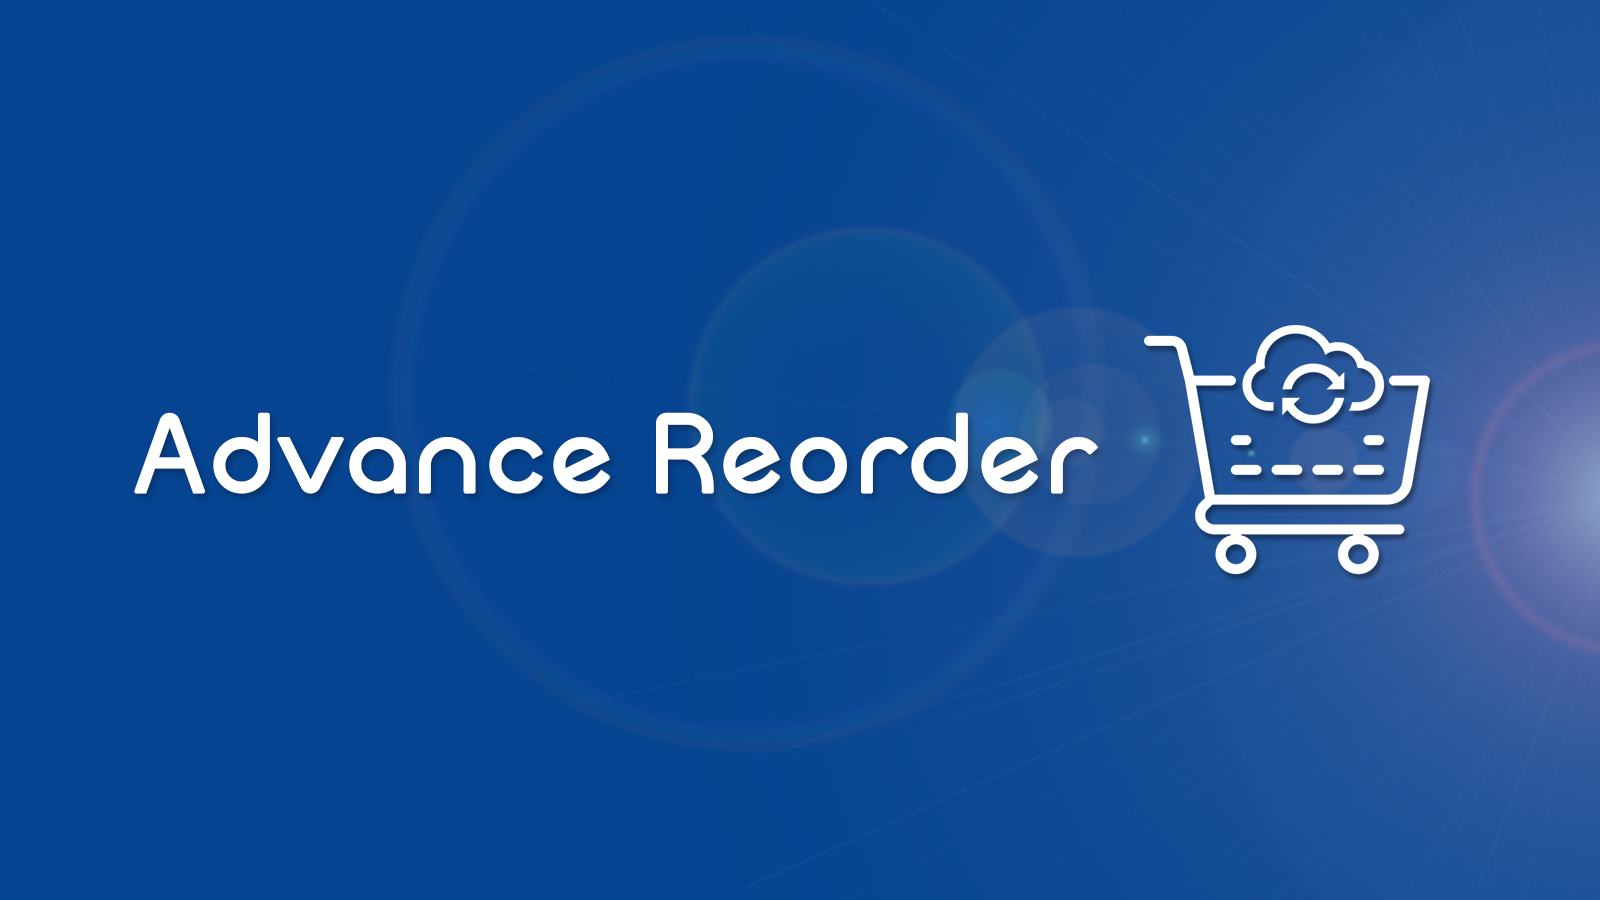 Advance Reorder | ultimate reorder | Shopify App | Identixweb - Advance Reorder Shopify app presents the easiest way to place the previous order again. Ultimate reorder enables customers to re-order the whole product just by one click.